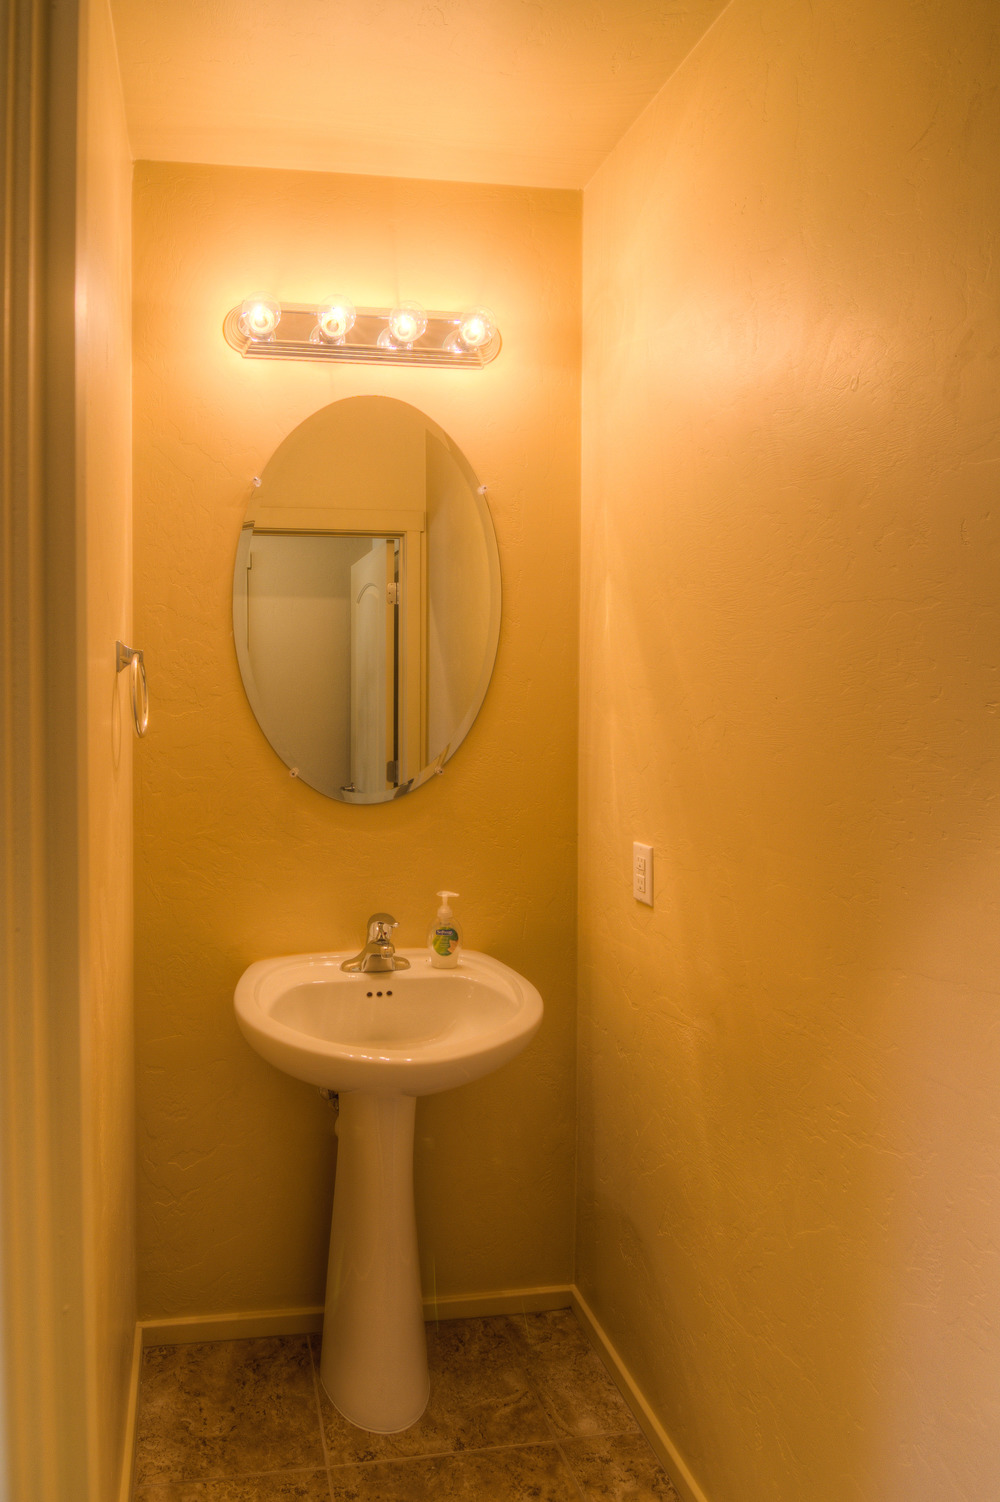 24 Downstairs Bathroom a.jpg